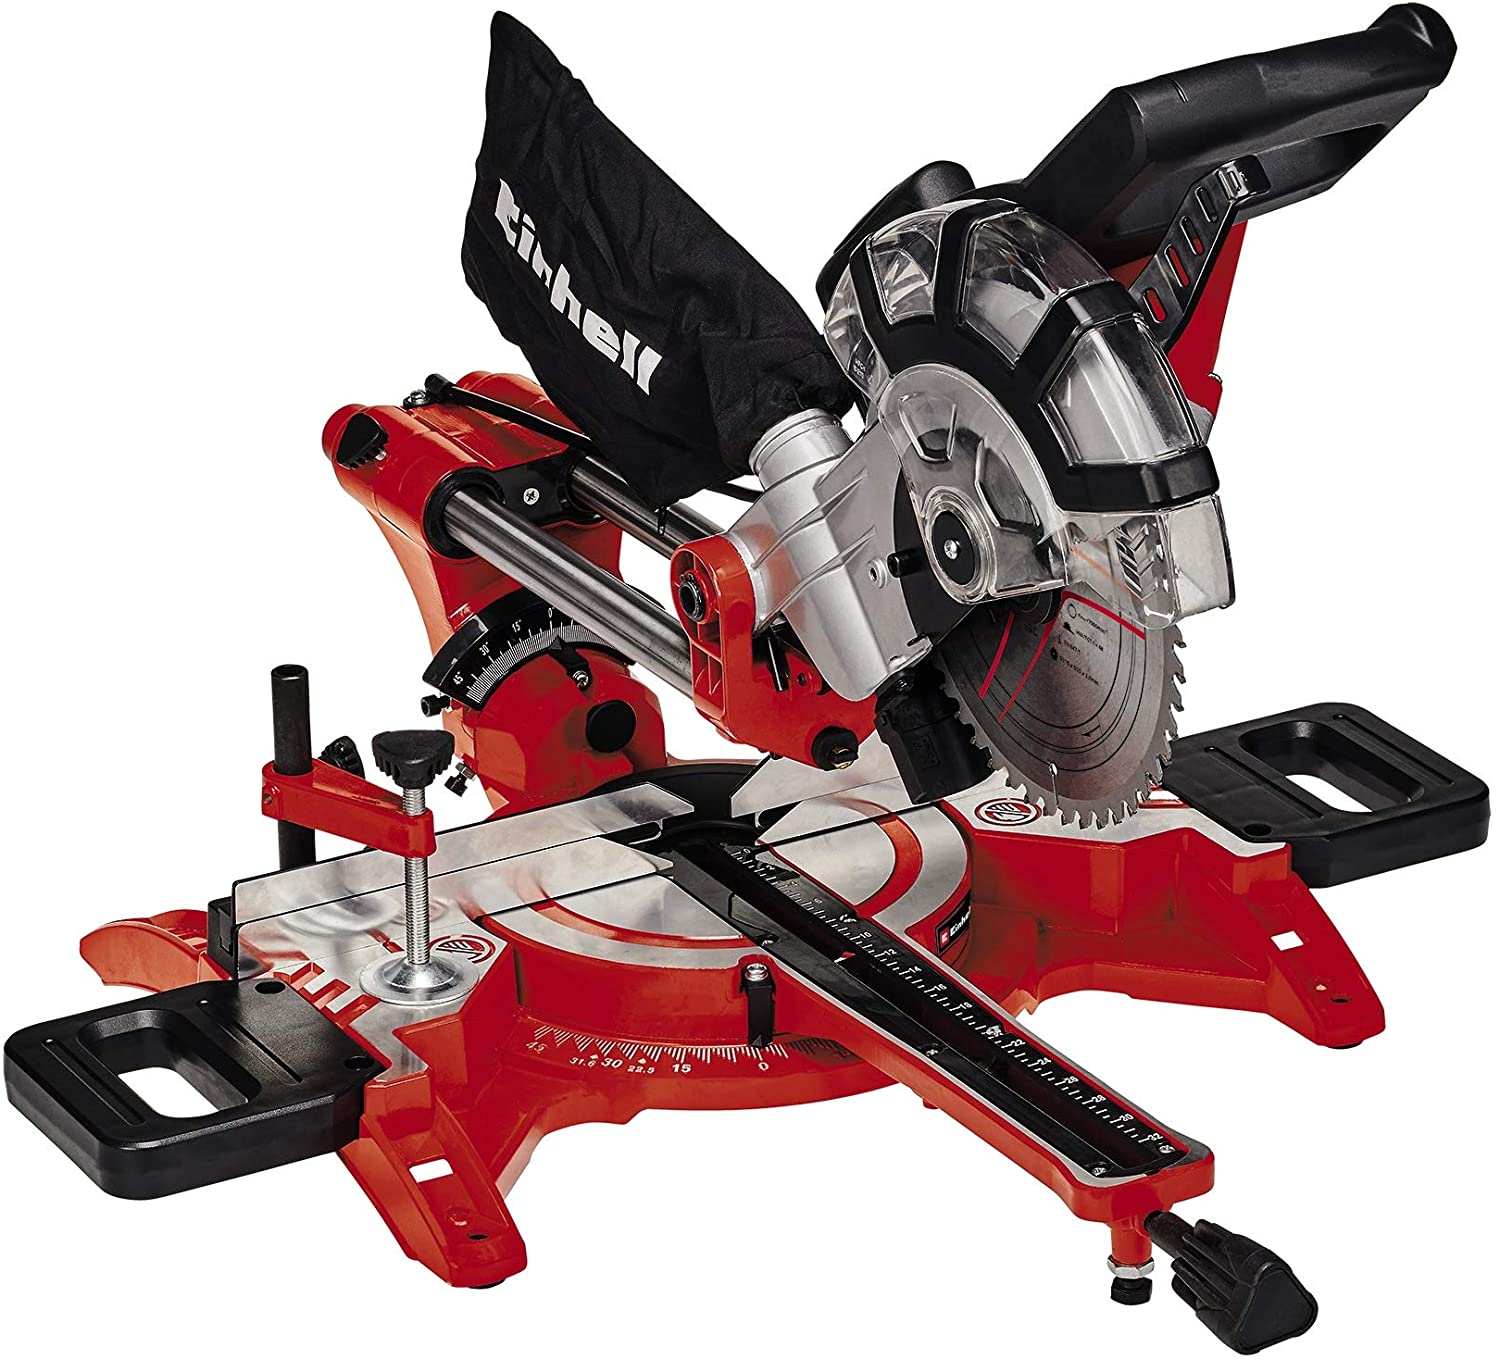 Einhell Dual Drag Crosscut and Mitre Saw TC-SM 2131/1